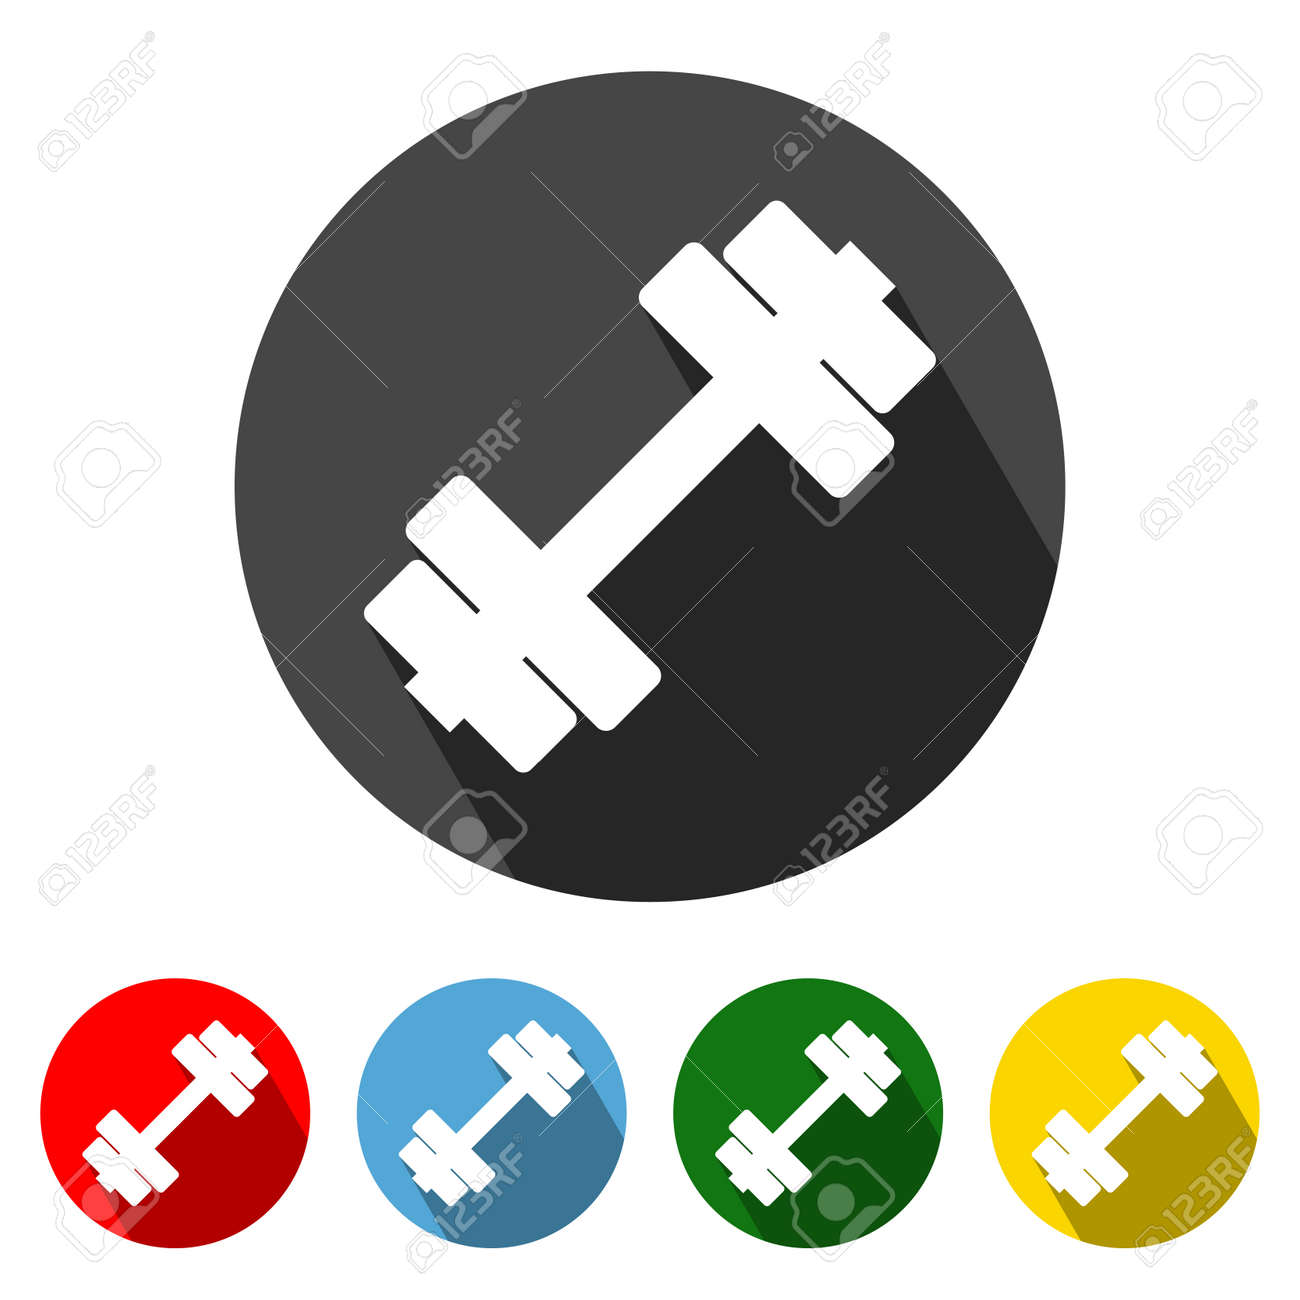 Fitness Flat Style Icon with Long Shadow. Fitness icon vector illustration design element with four color variations. Dumbbell icon with long shadow. Symbol of Gym and Fitness. All in a single layer. Elements for design. - 171946961